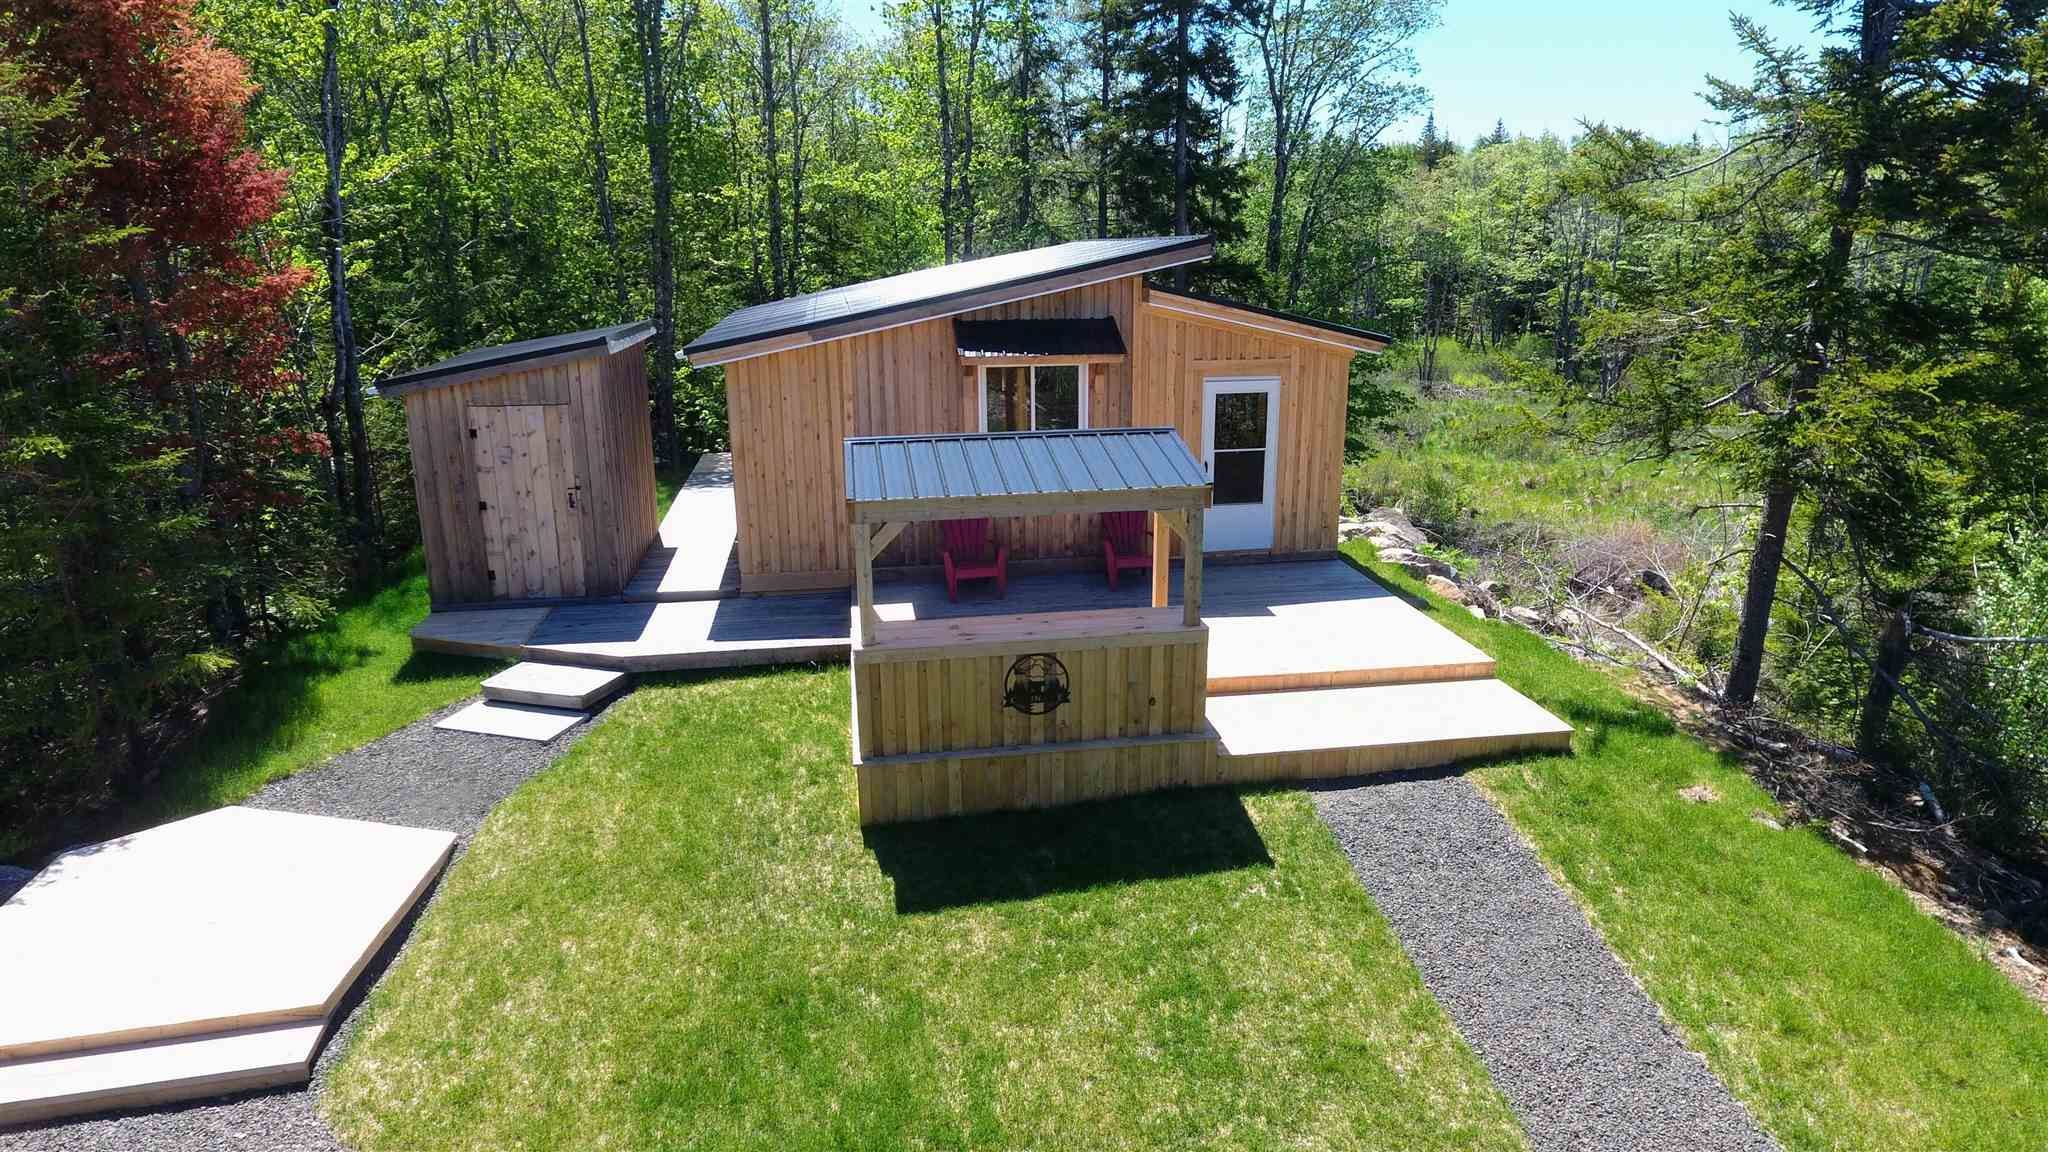 Main Photo: 604 Lansdowne in Lansdowne: 401-Digby County Residential for sale (Annapolis Valley)  : MLS®# 202115018